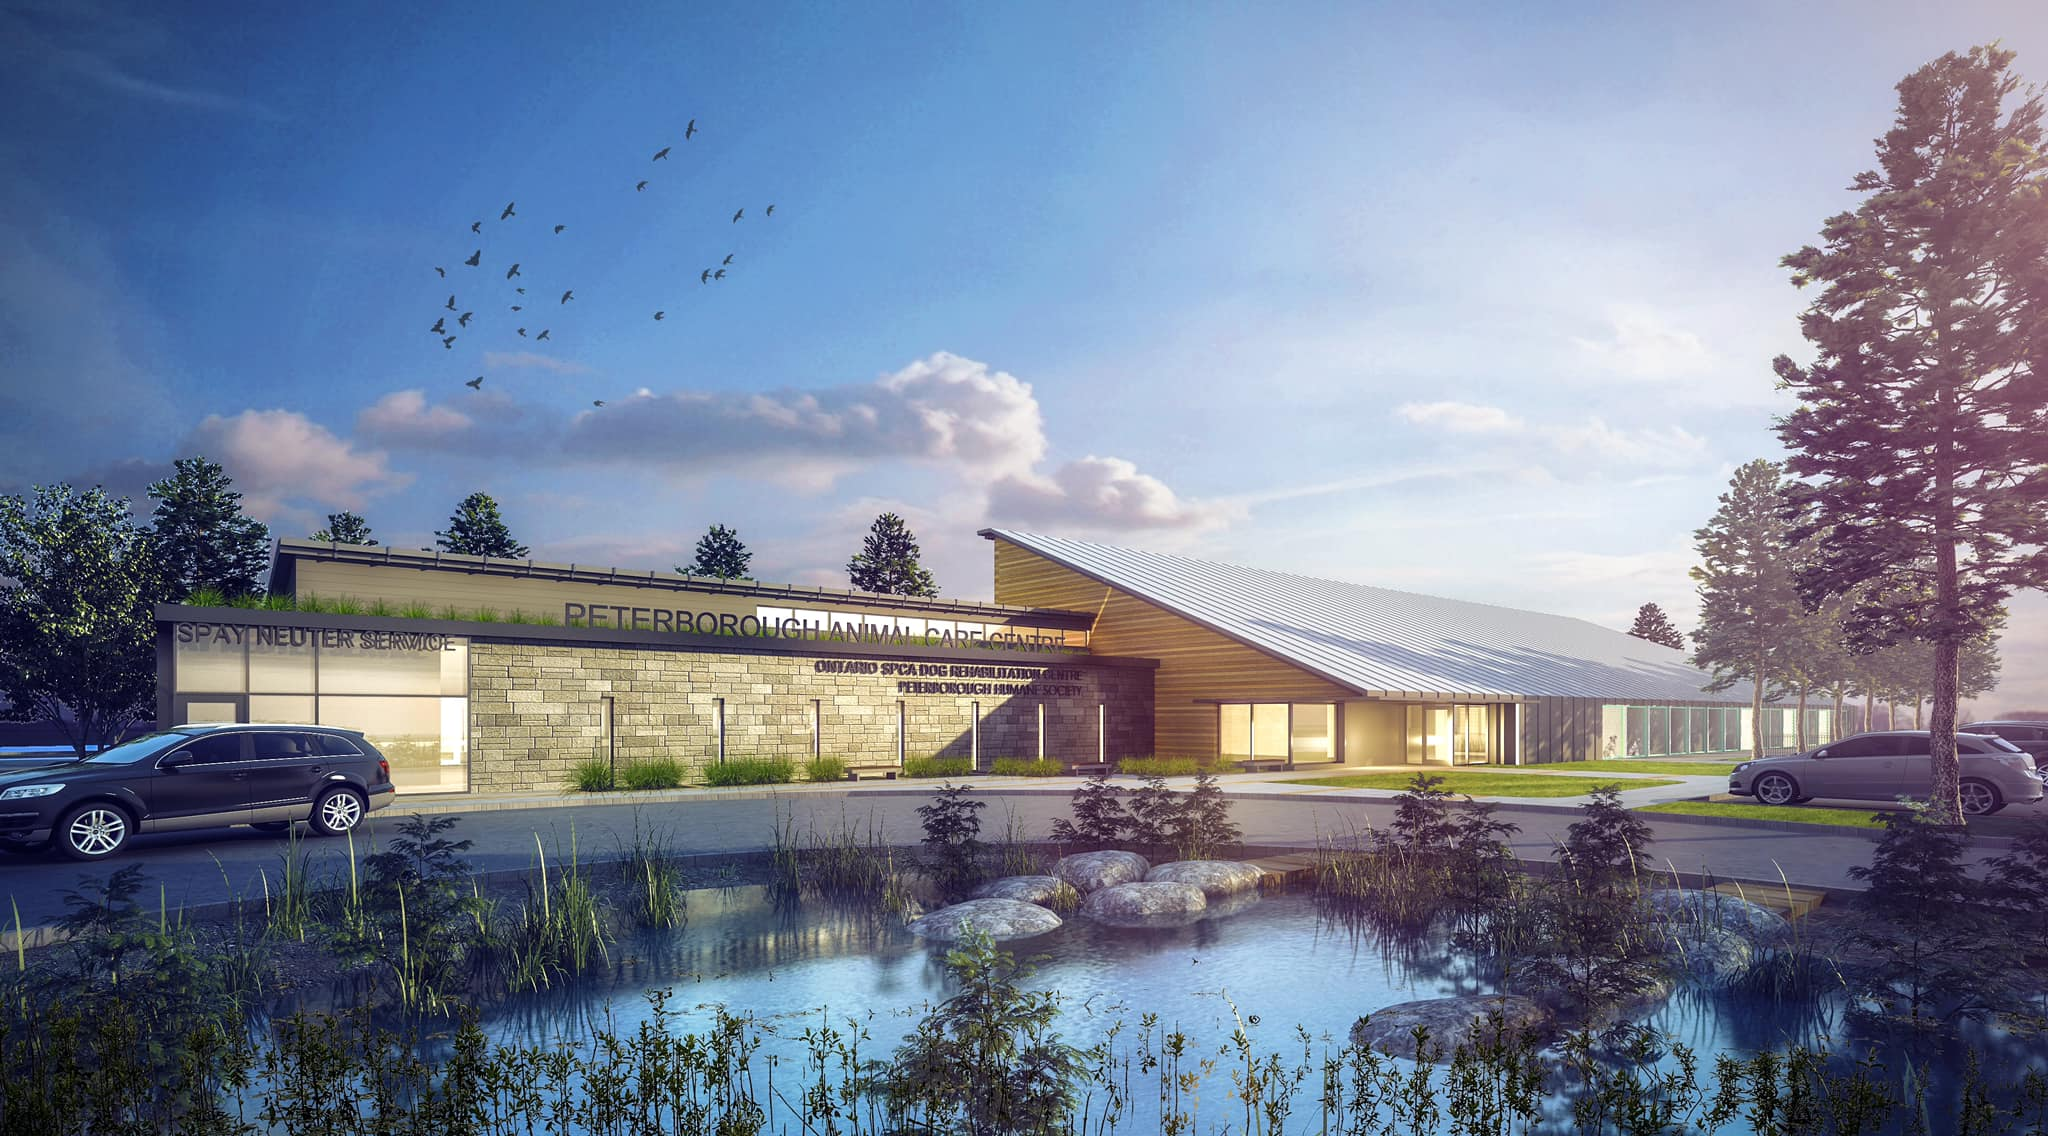 Rendering of future home of Peterborough Humane Society